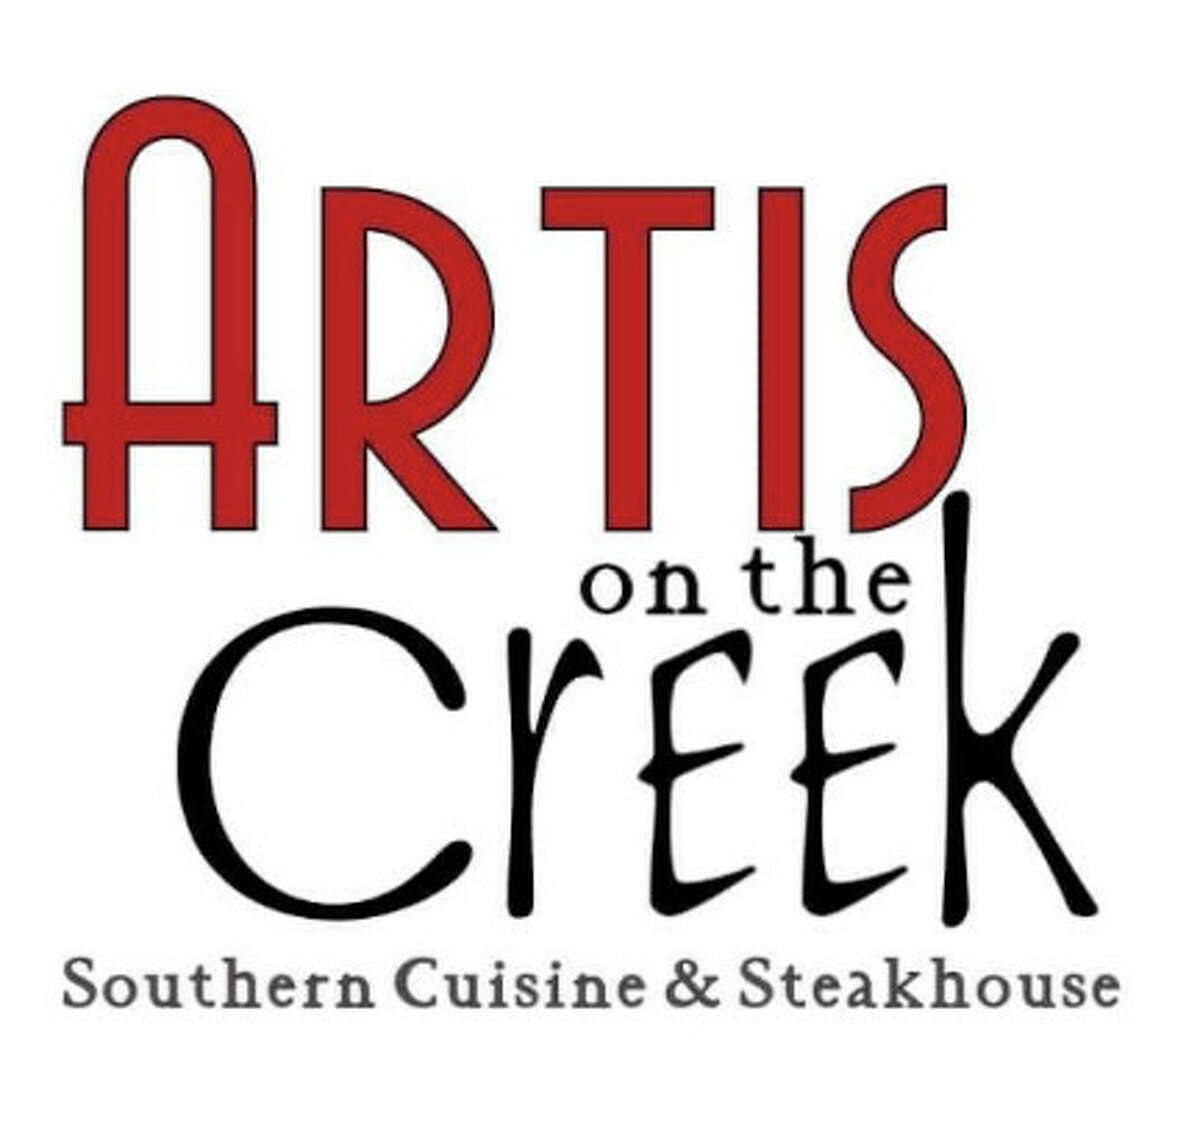 The logo for the new restaurant in the village of Catskill. (Provided photo)